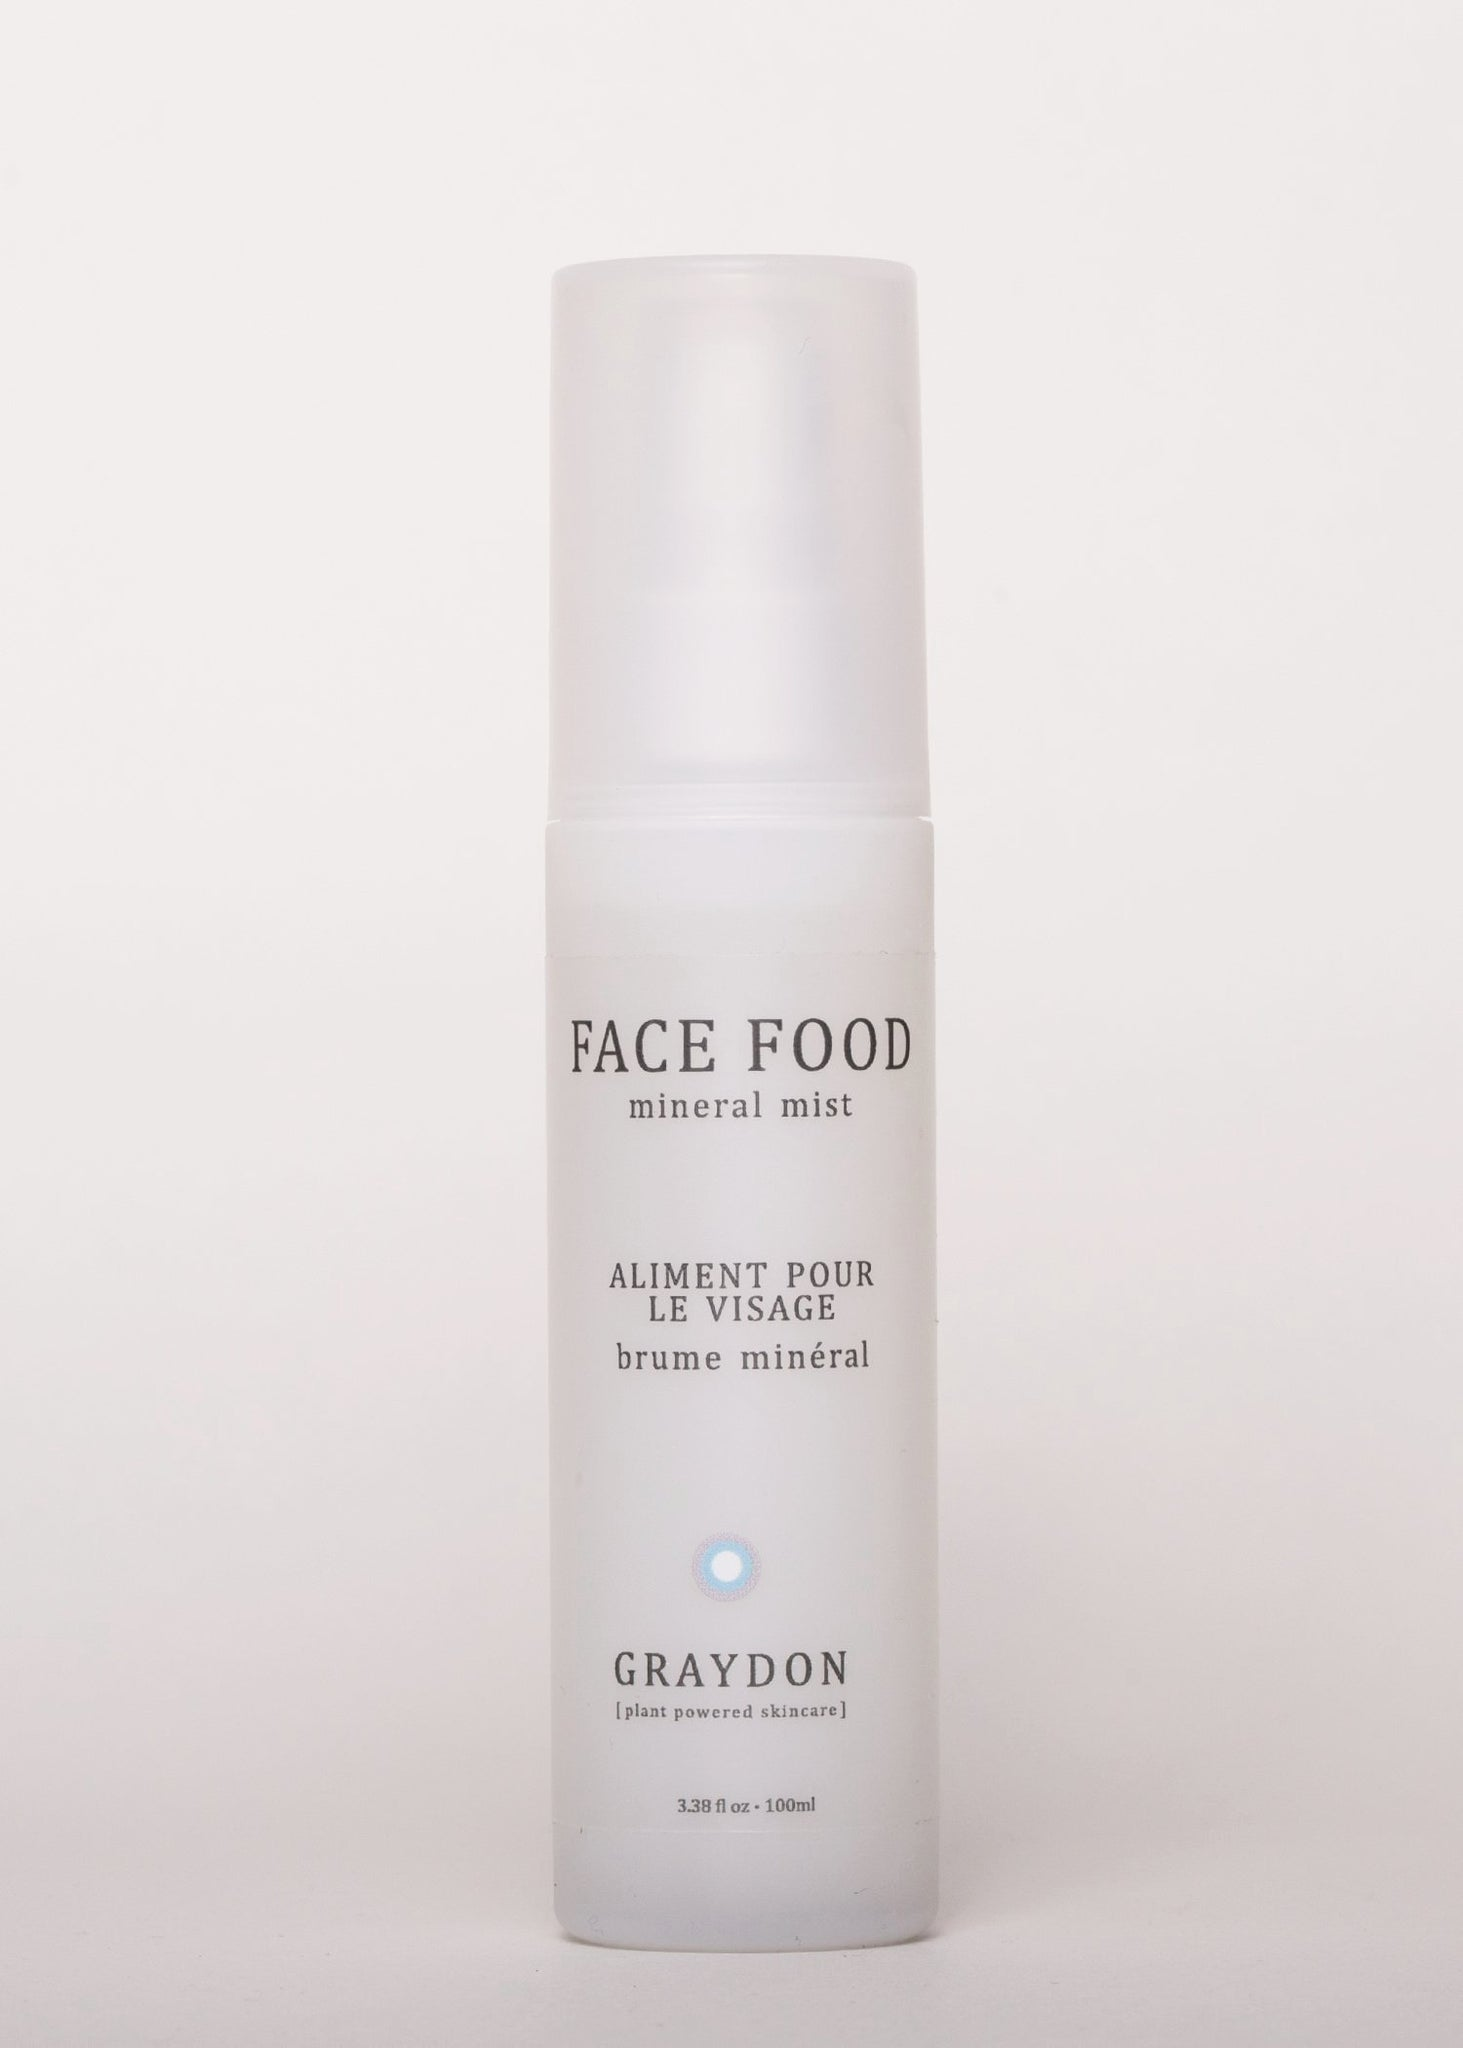 Face Food Mineral Mist - Graydon Skincare | Goodnight Beauty | toner, face mist, super food, mineral, natural beauty, natural skin care, skin care, graydon, made in canada, canada brand, canada beauty